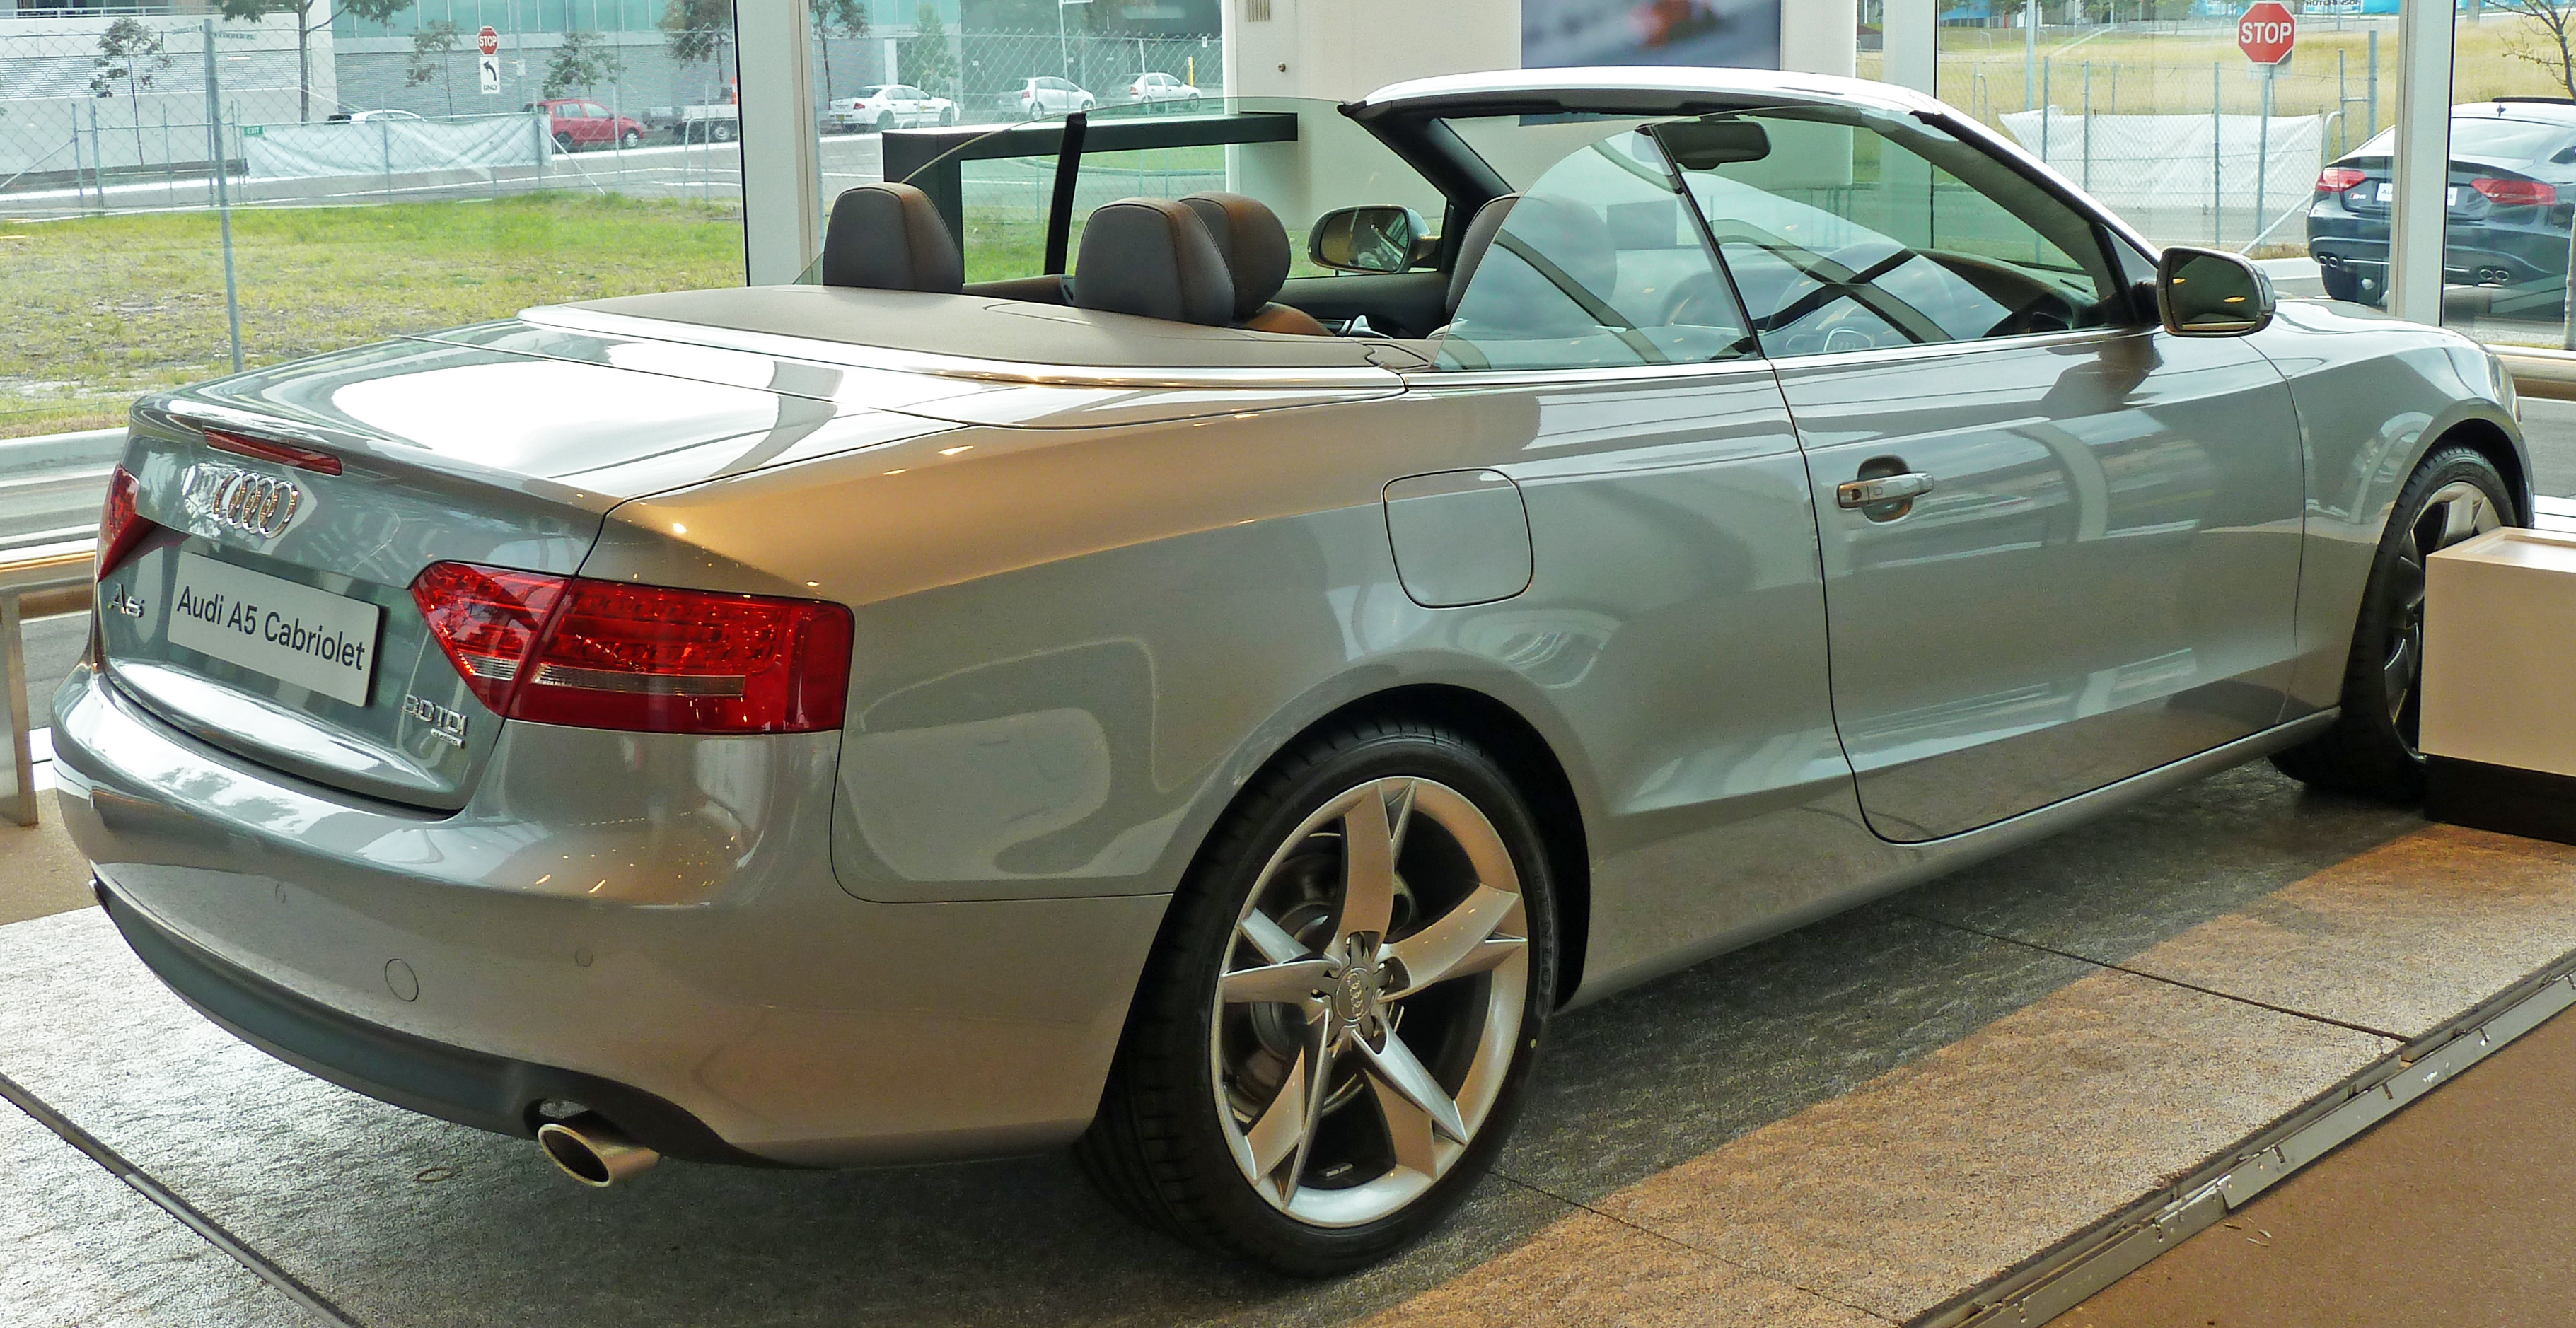 file 2010 audi a5 8f7 my10 3 0 tdi quattro convertible 2010 07 10 wikimedia commons. Black Bedroom Furniture Sets. Home Design Ideas